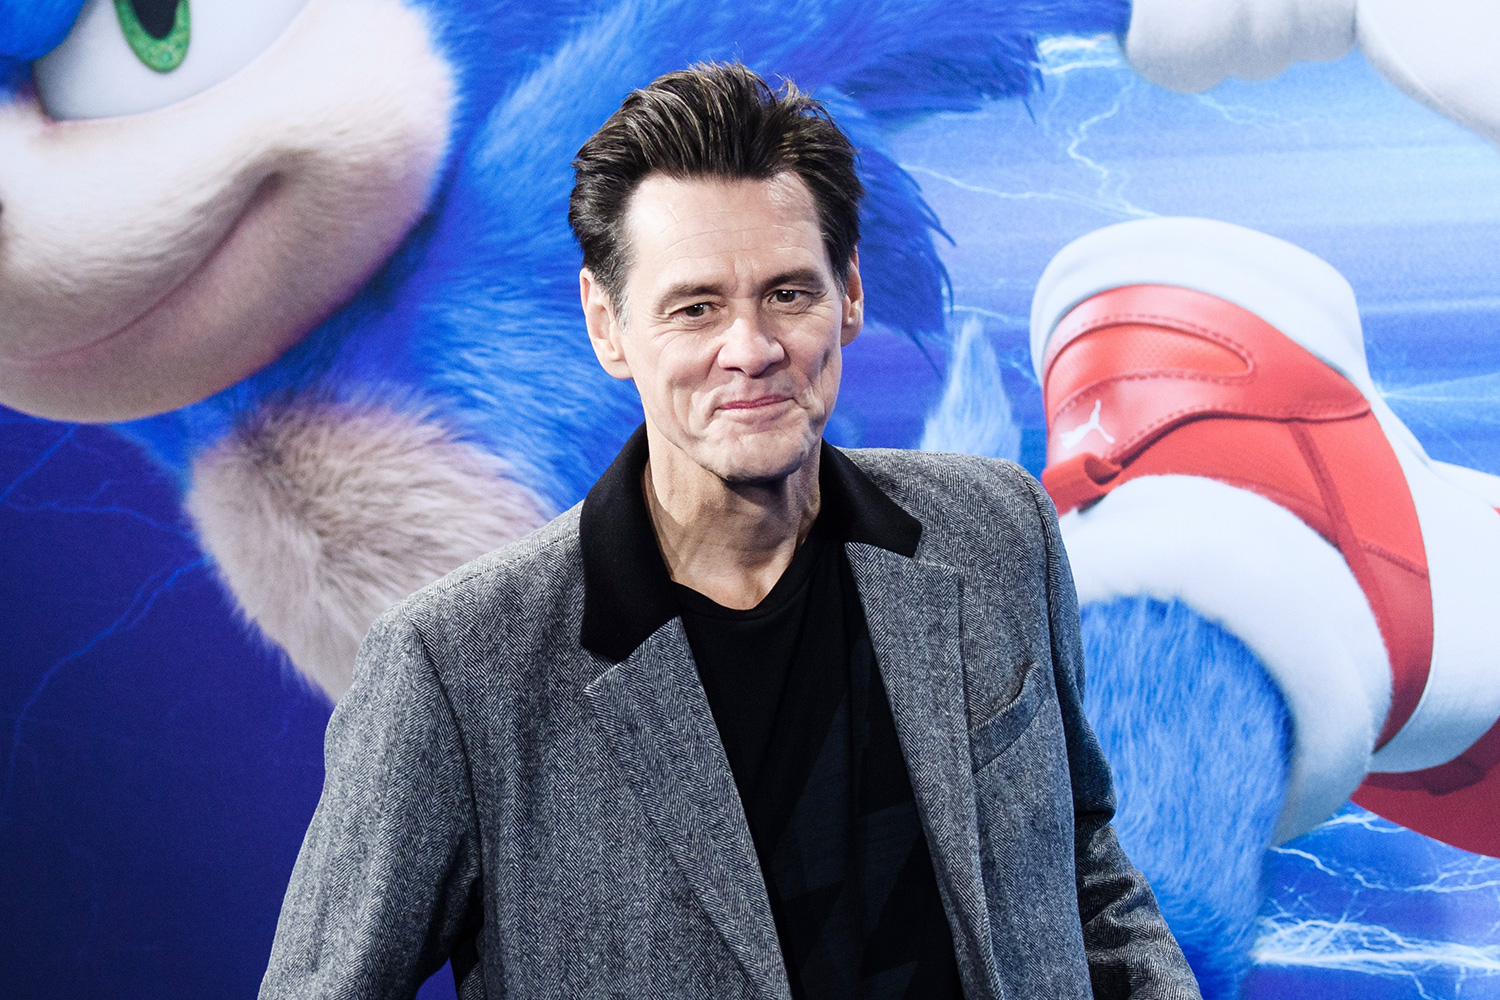 Jim Carrey poses on the blue carpet of the 'Sonic the Hedgehog' fan screening in Berlin, Germany, 28 January 2020